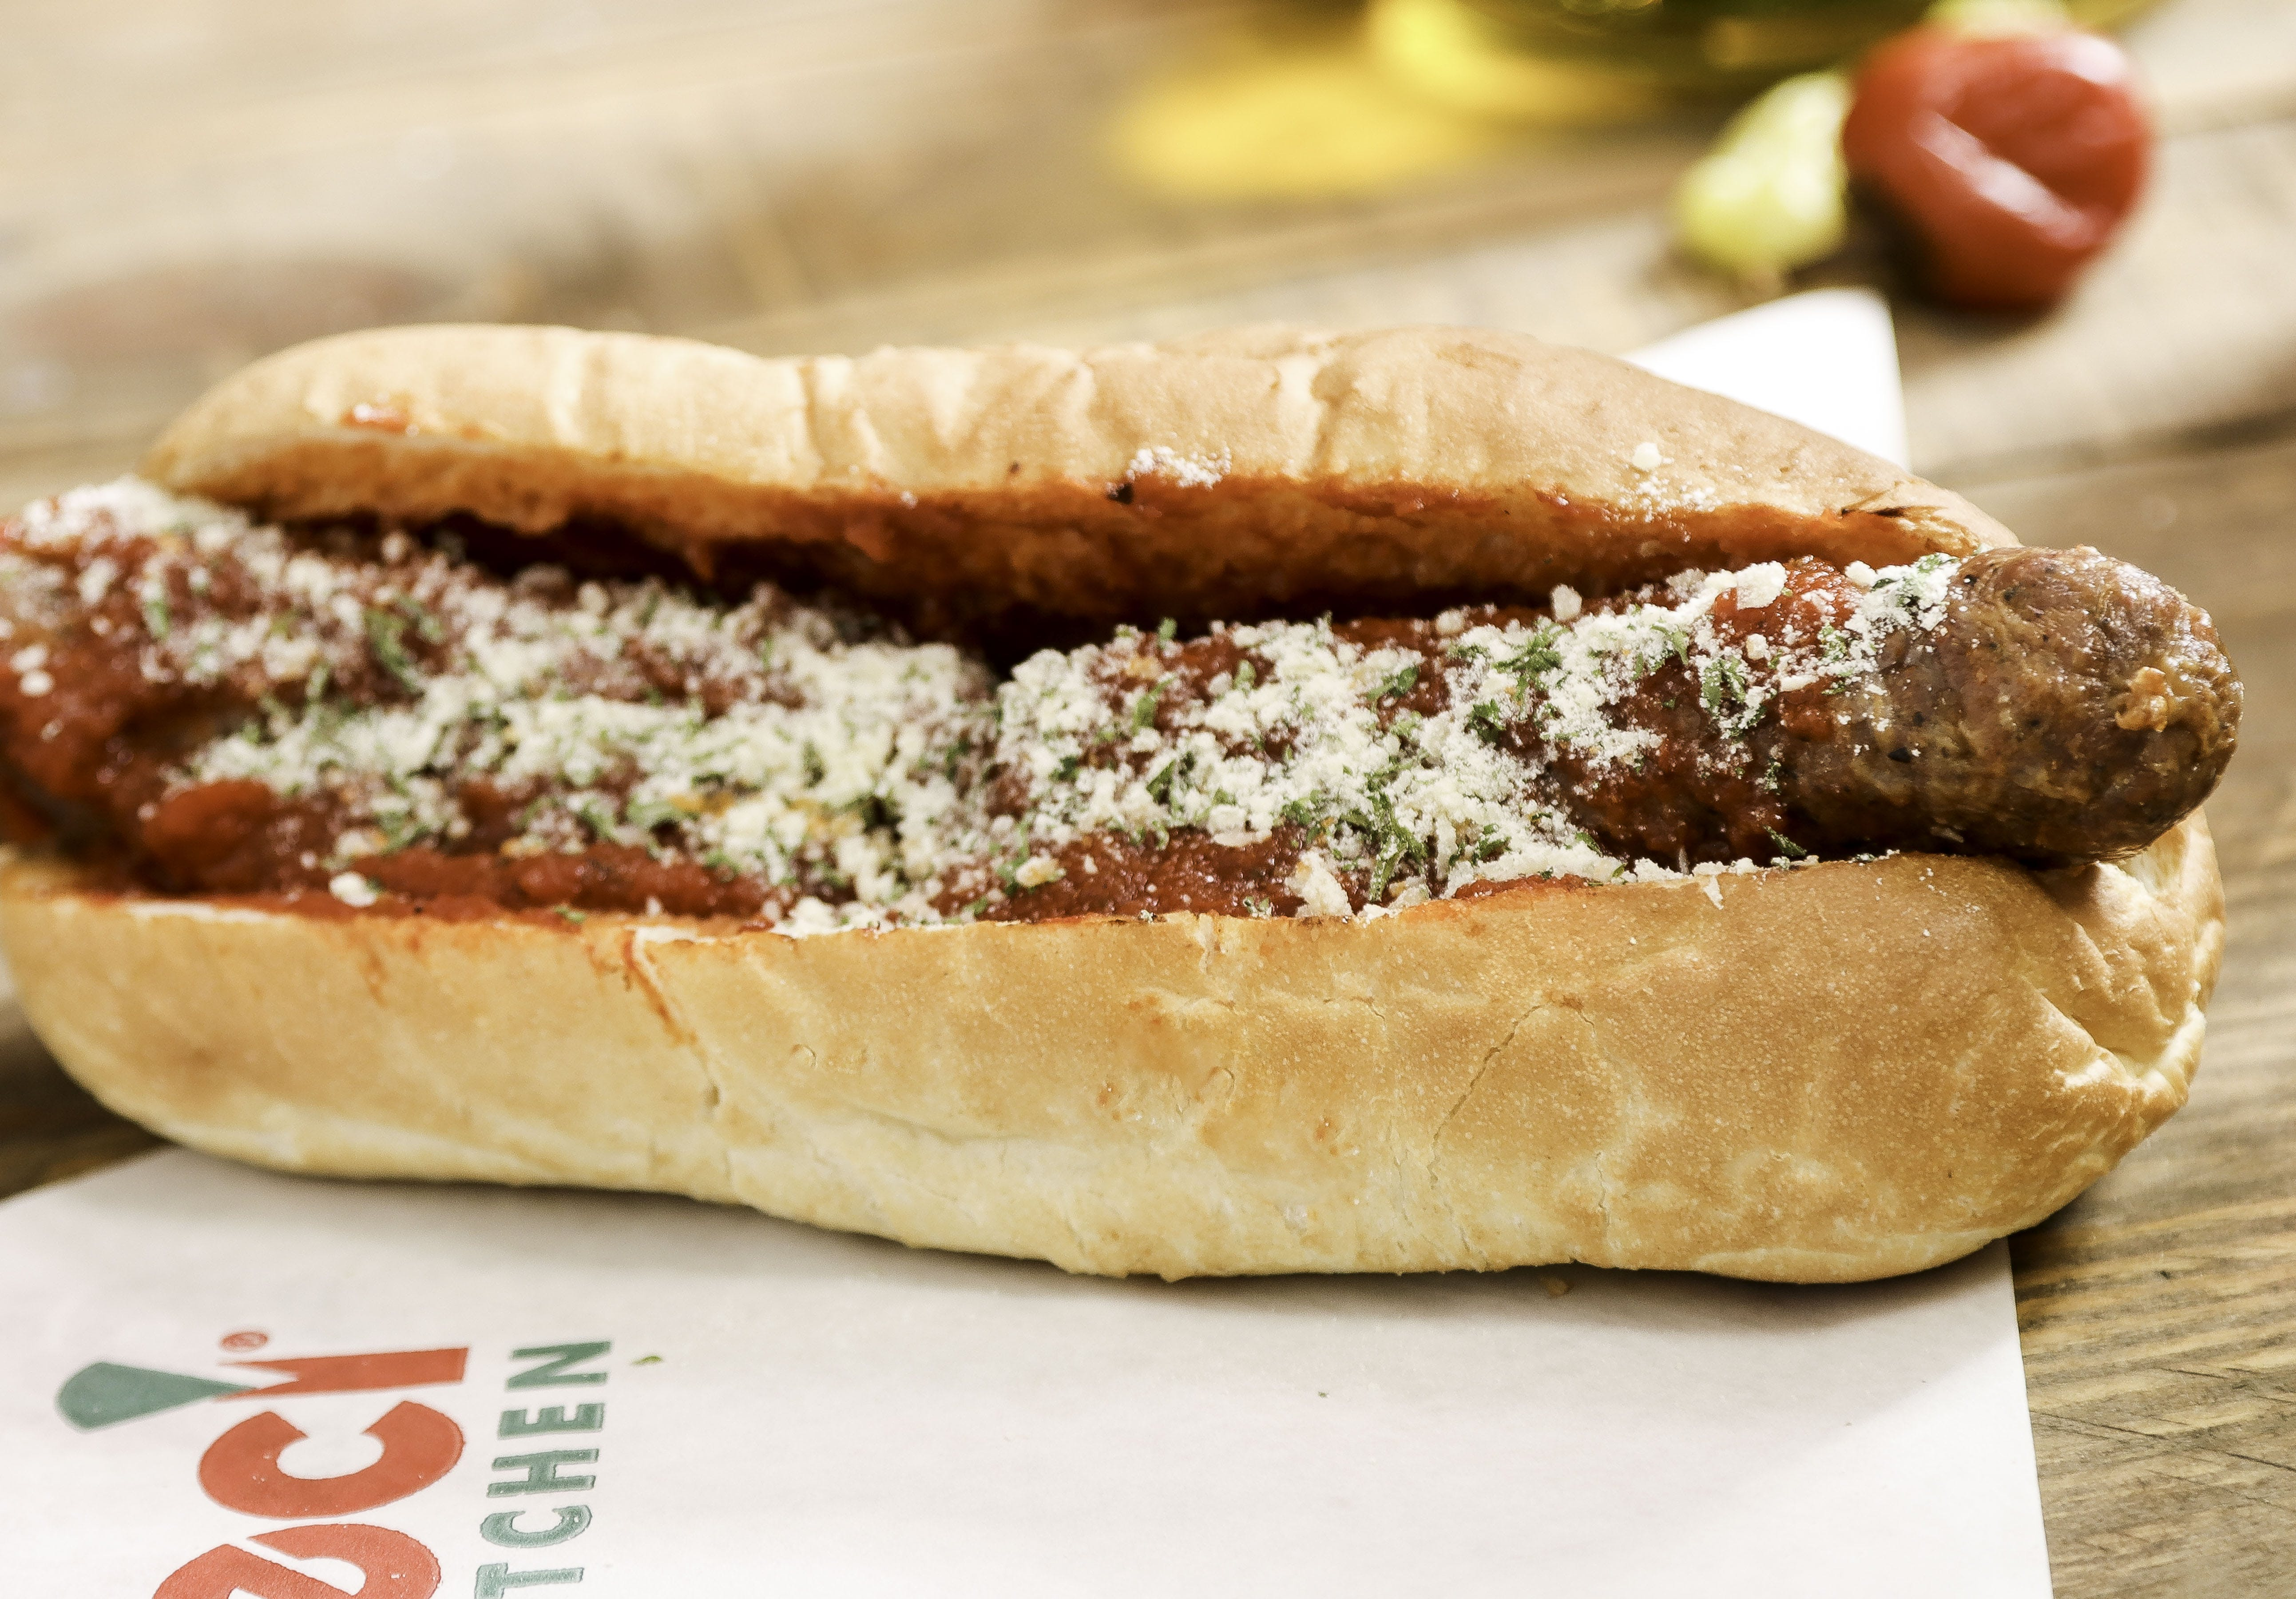 Sausage Sandwich from Ameci Pizza & Pasta - Lake Forest in Lake Forest, CA